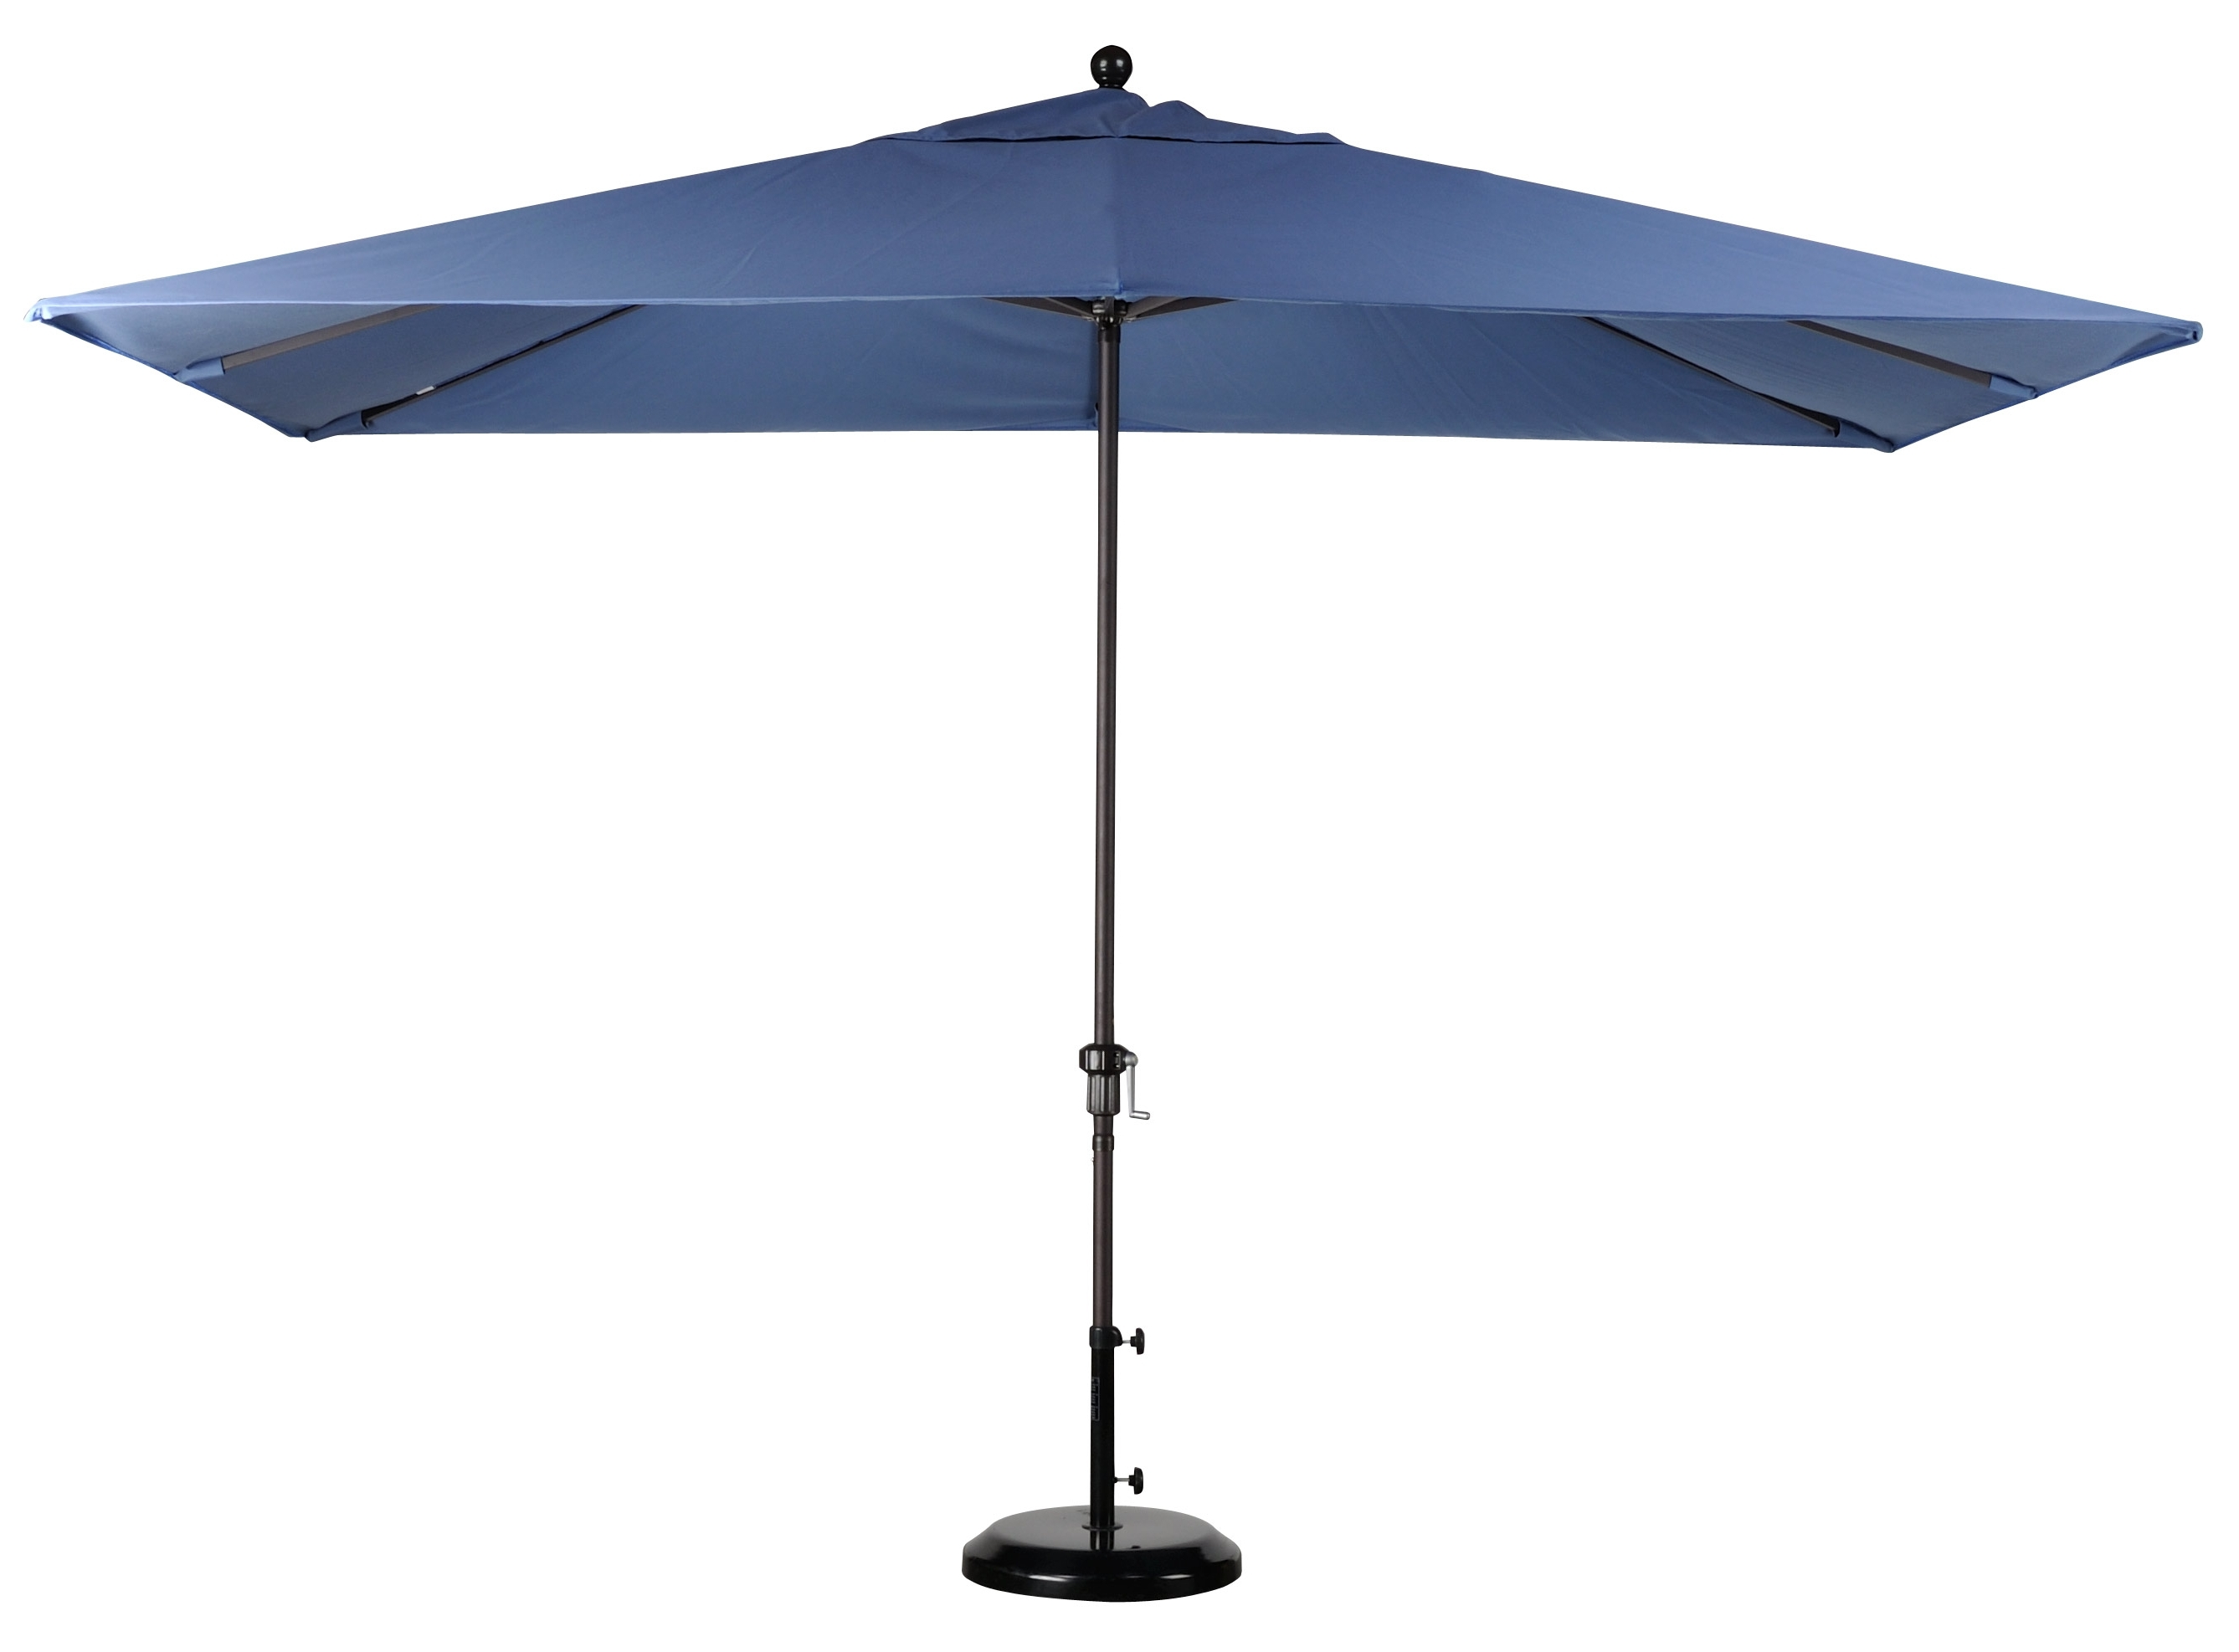 Well Liked Sunbrella Patio Umbrella With Lights Intended For Best Selection Rectangular Market Umbrellas – Featuring Sunbrella (View 20 of 20)